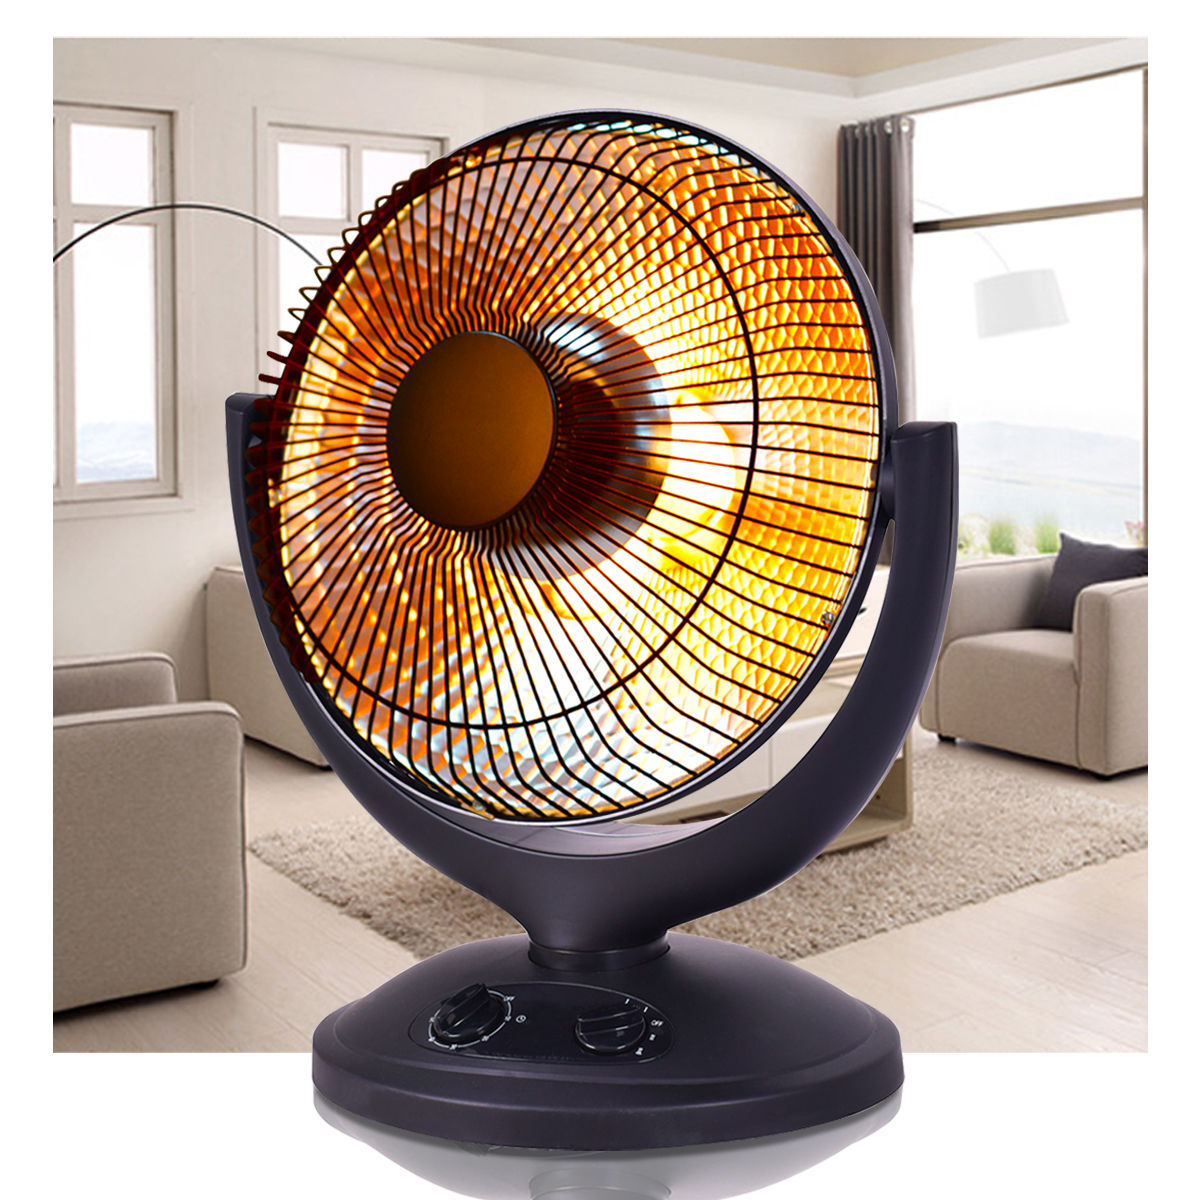 Costway Electric Parabolic Oscillating Infrared Radiant Space Heater W Timer Home office by Costway